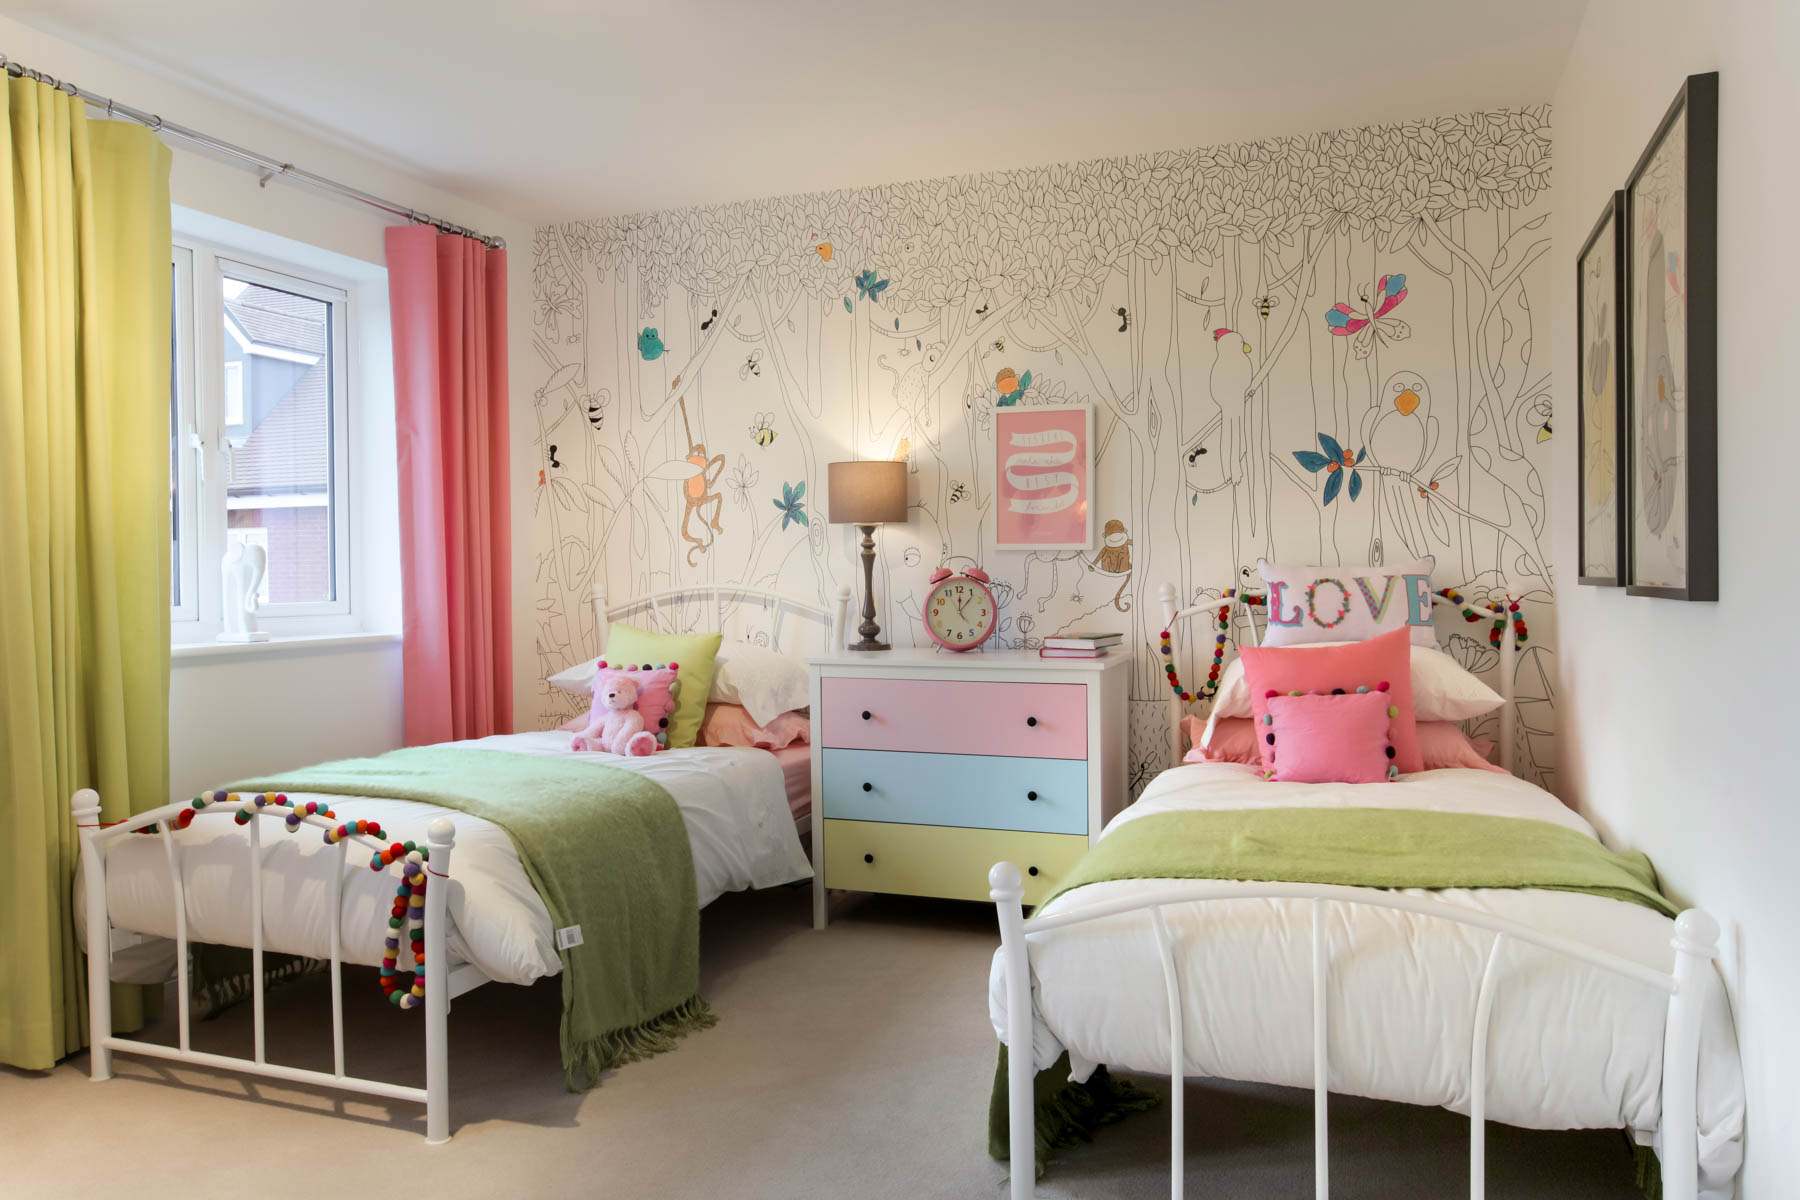 Show Home Bedroom How To Design A Childs Room Taylor Wimpey